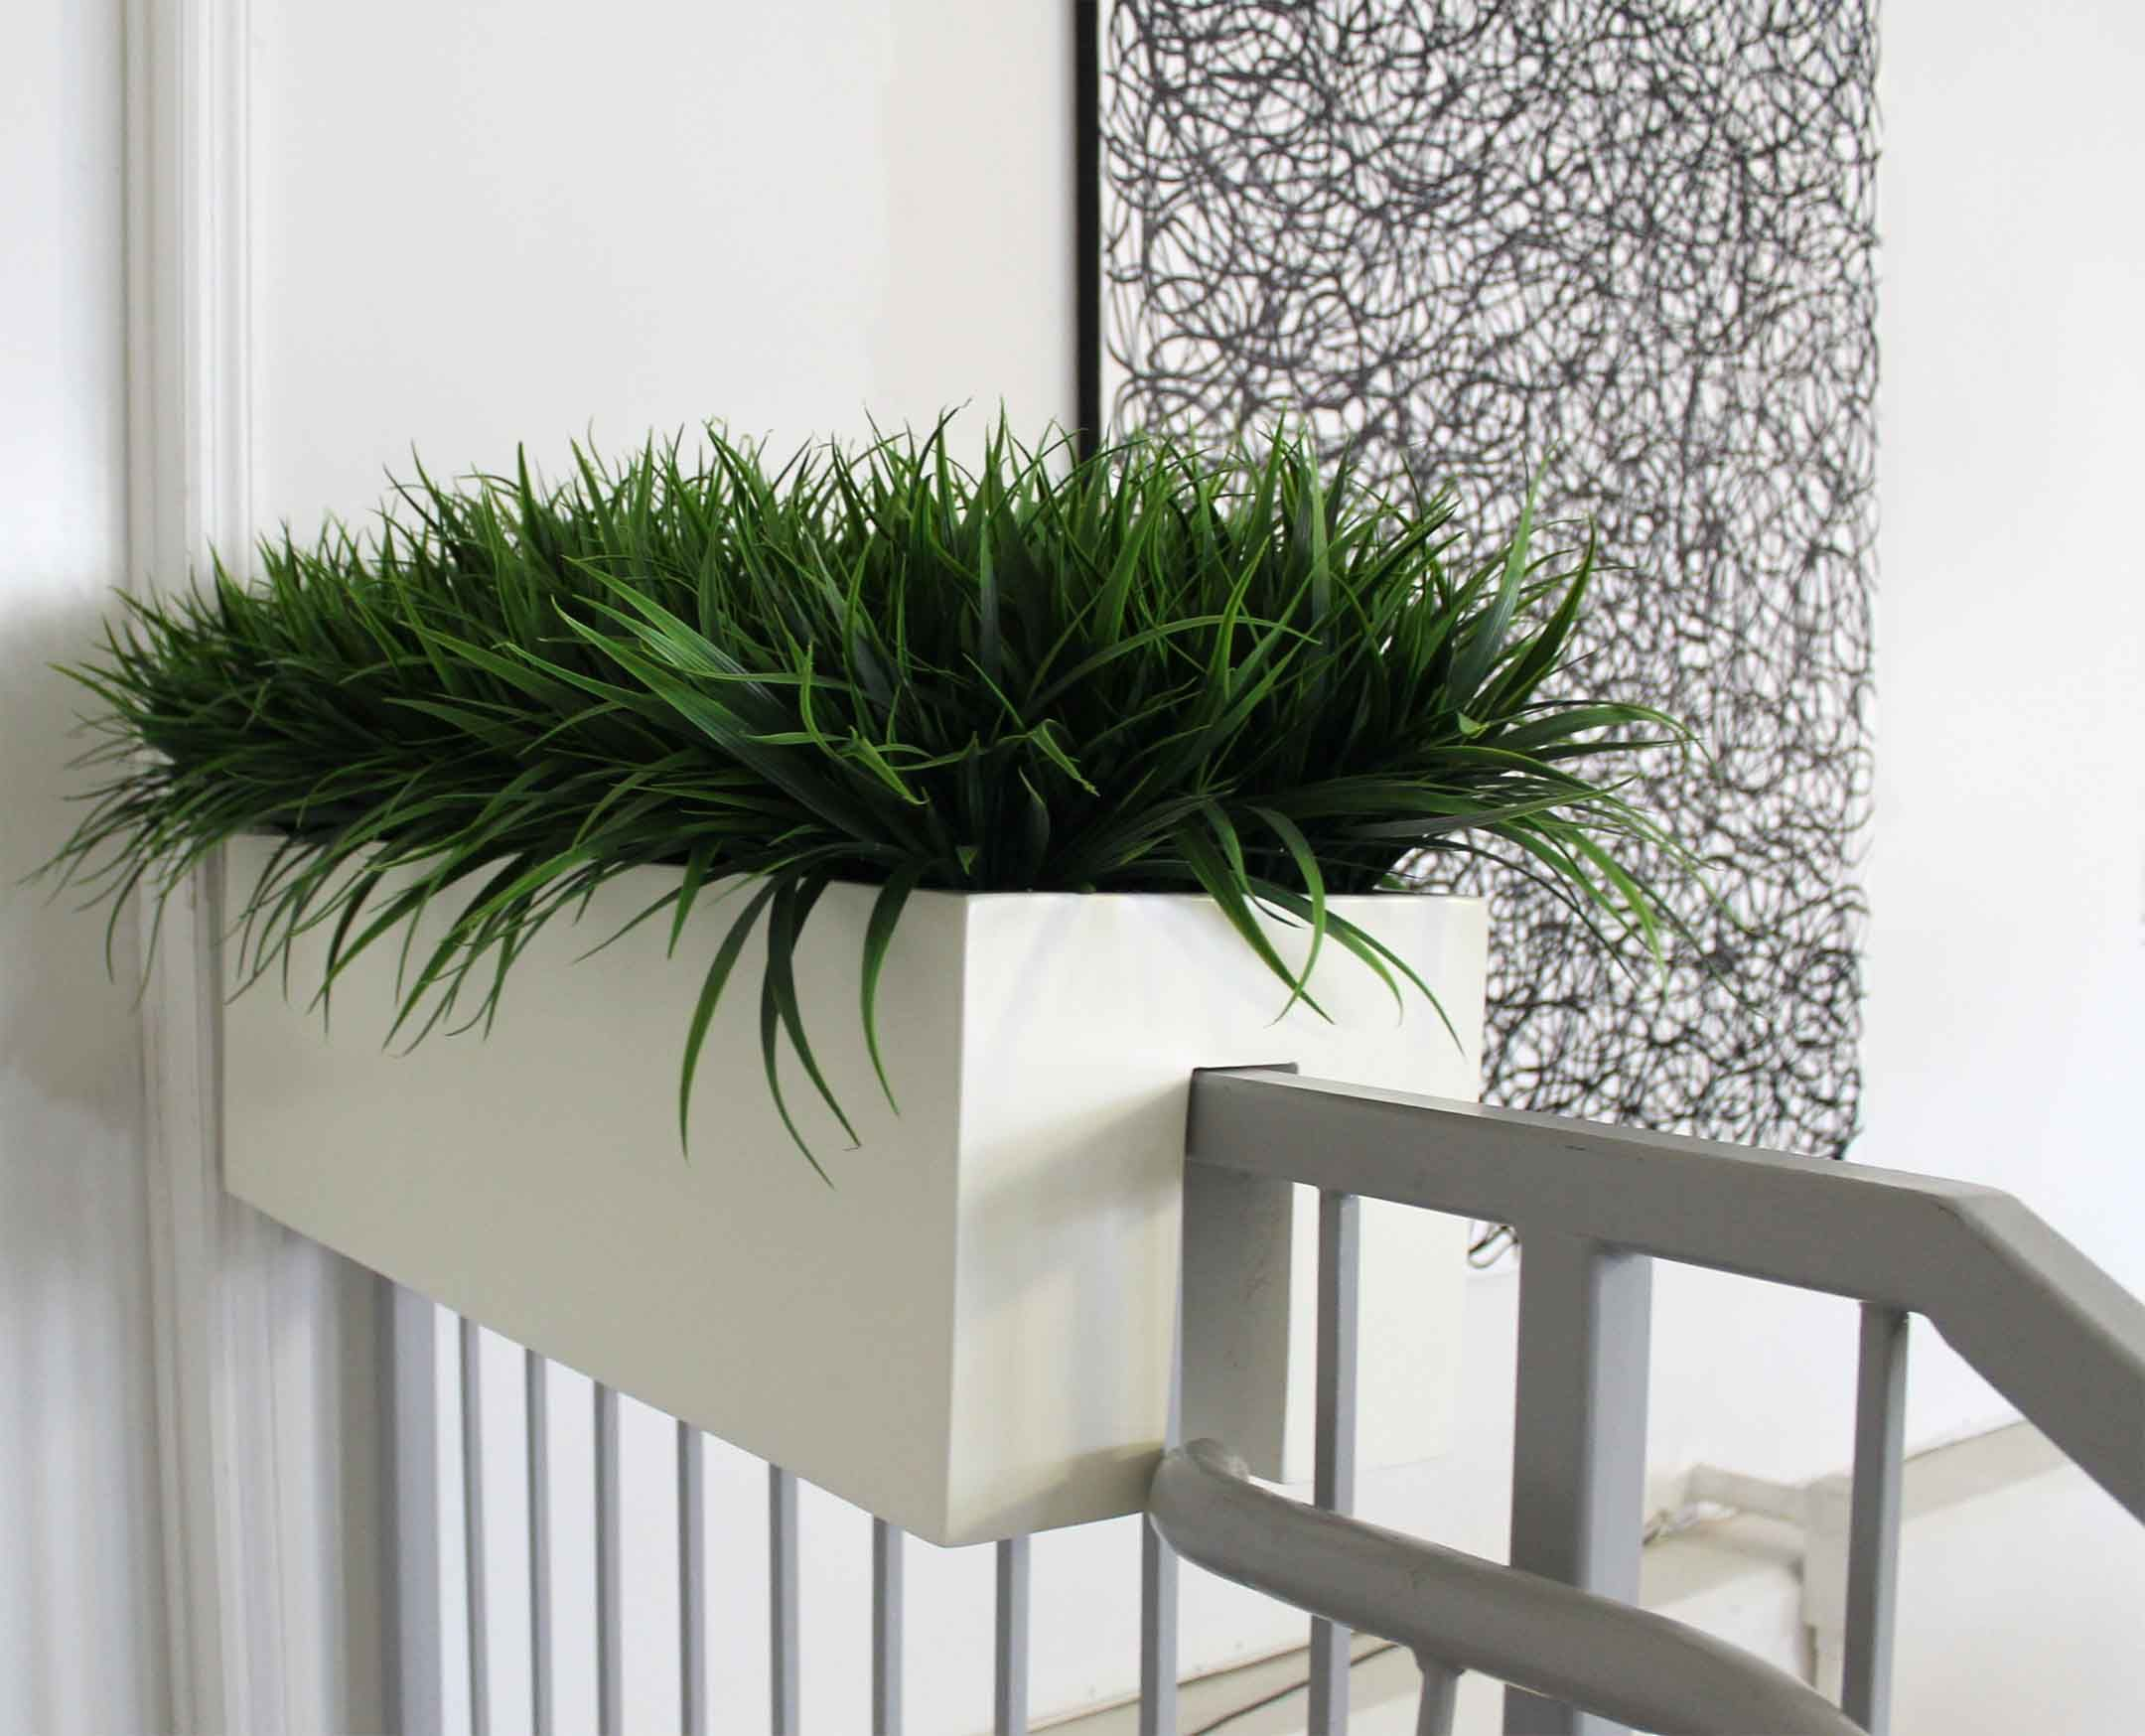 Superior Garden Landscaping, Simple Model And White Color Plus Middle Size For Planter  Design On Casual Railings Closed White Wall Paint And Abstract Wall Art  Decor ...